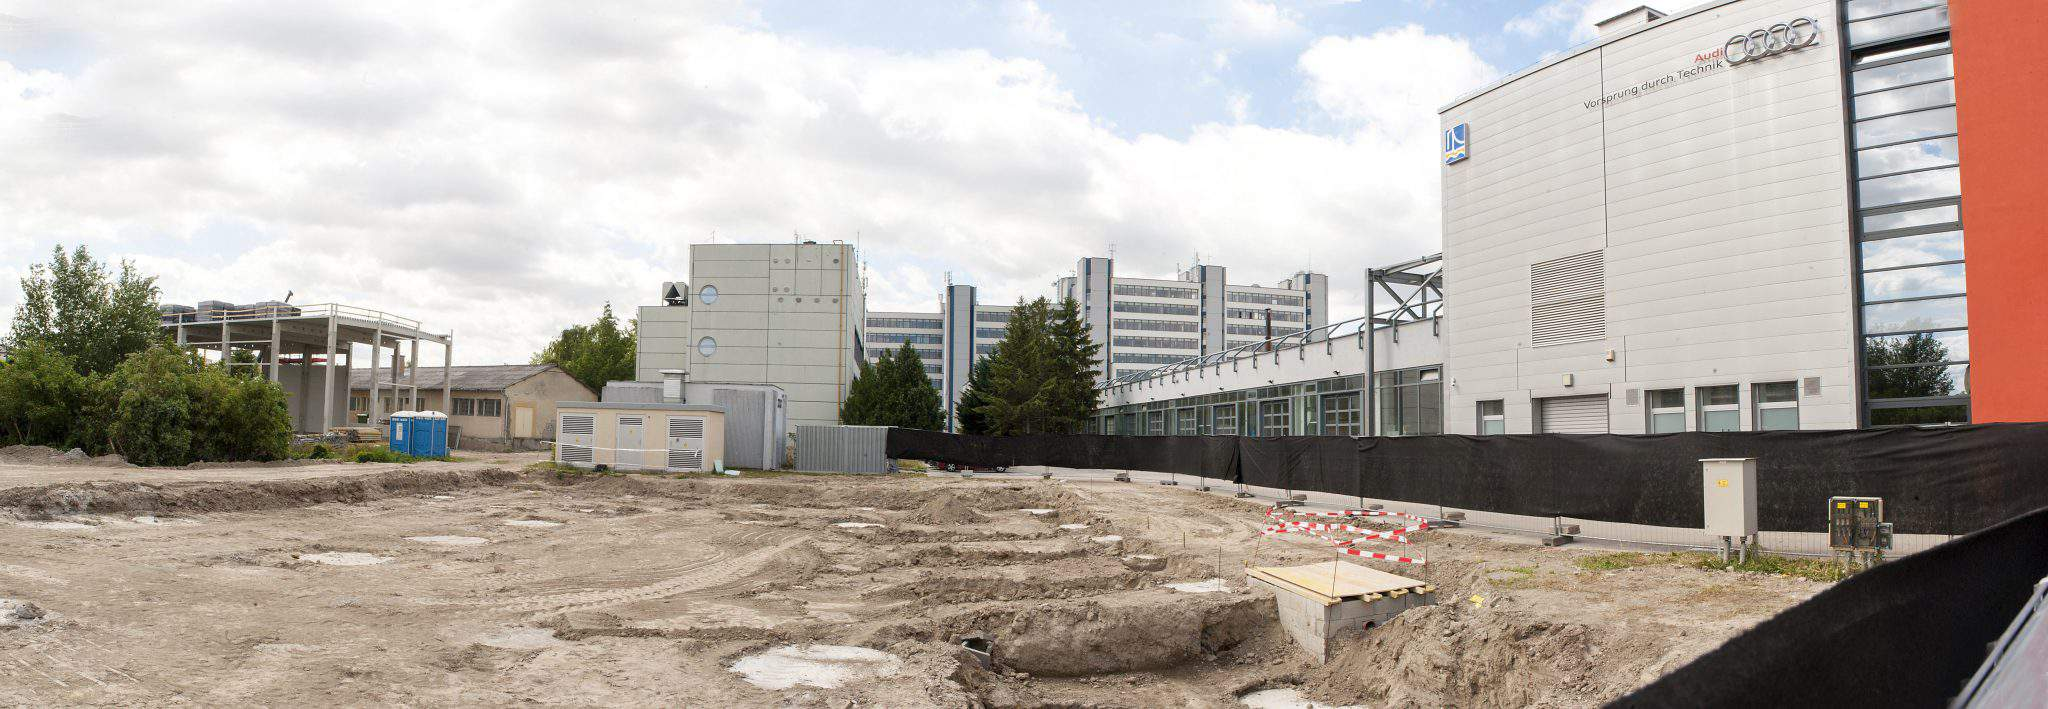 The groundbreaking ceremony for the Hungary's first-ever Centre of Higher Education and Industry Cooperations at the Széchenyi István University.